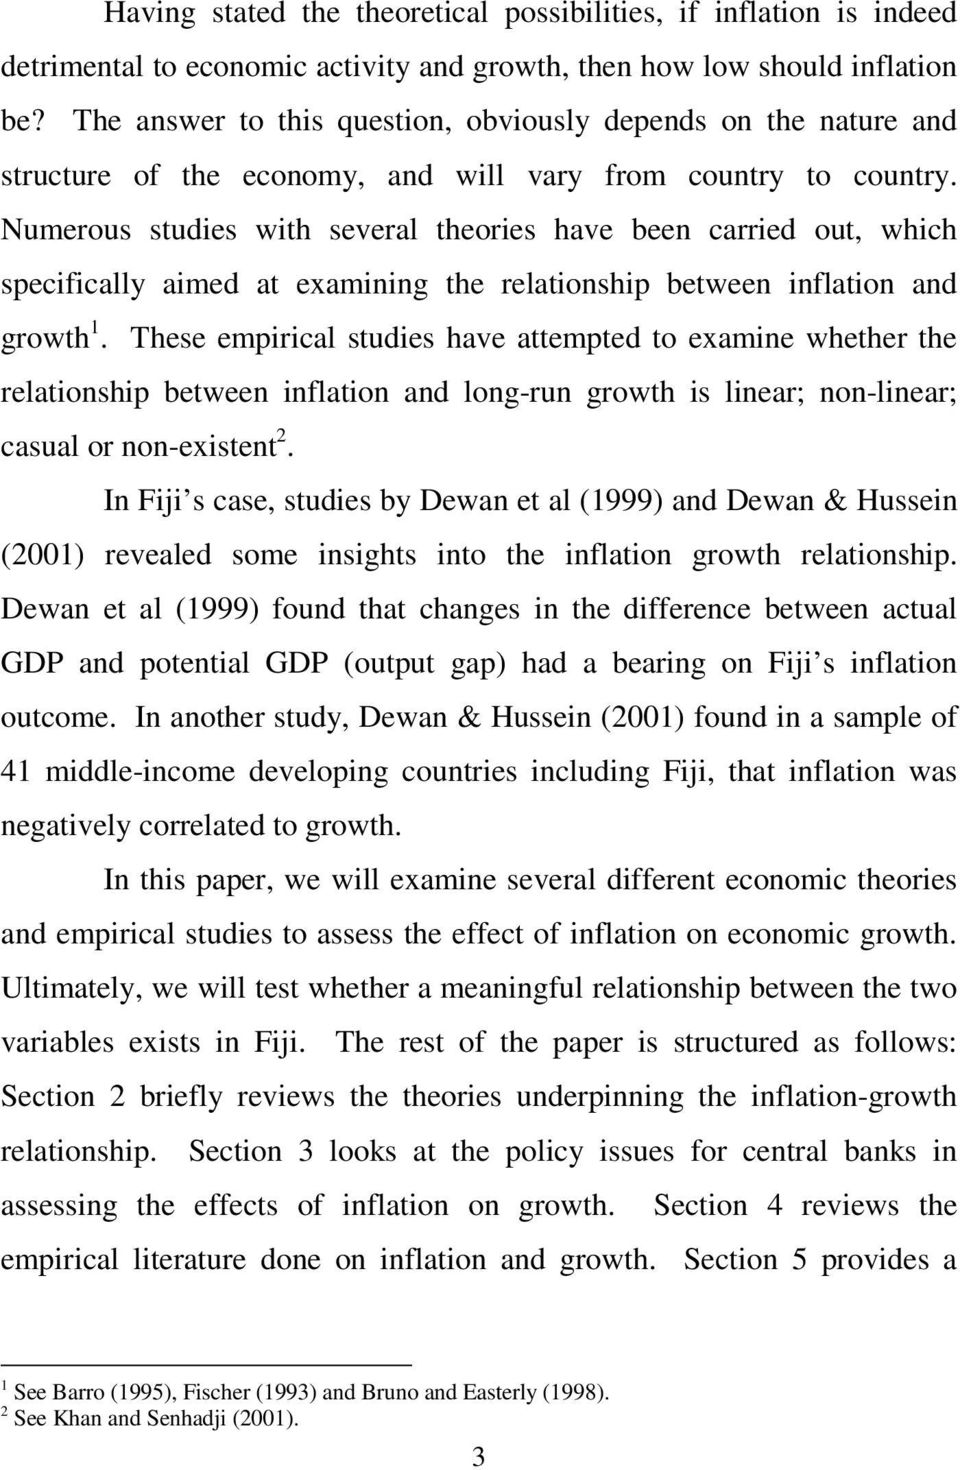 Numerous studies with several theories have been carried out, which specifically aimed at examining the relationship between inflation and growth 1.